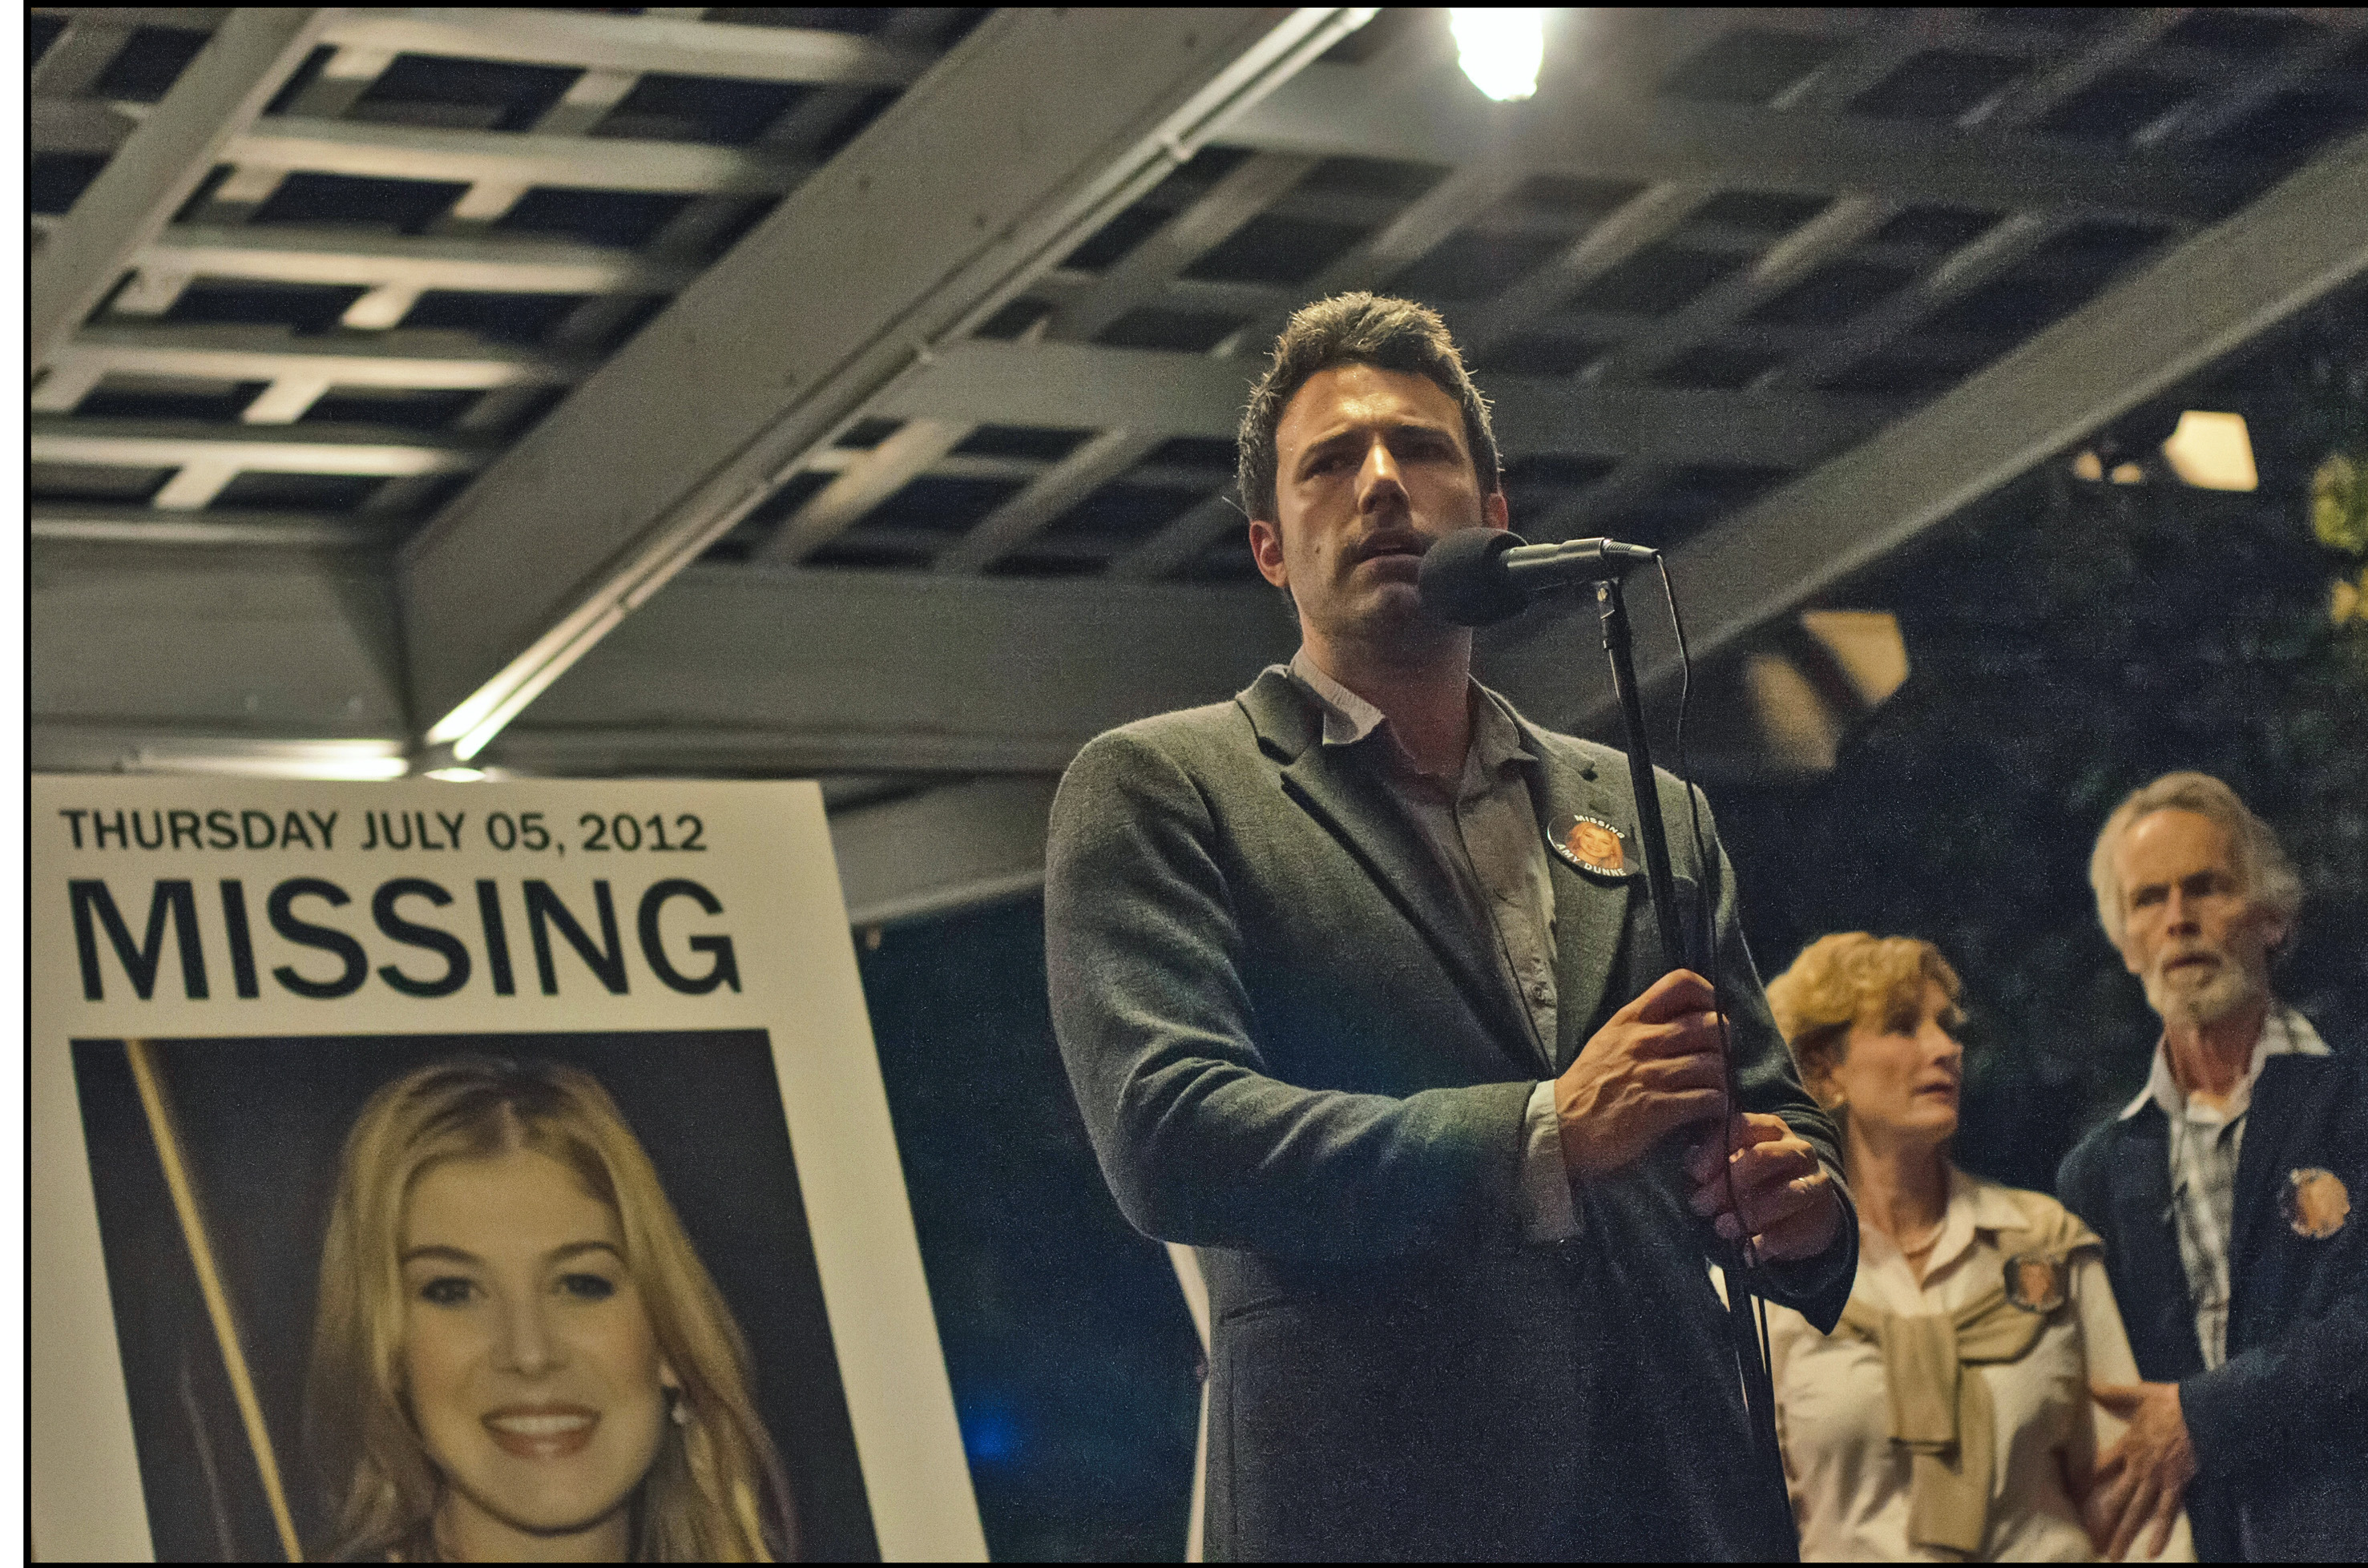 """Nick Dunne (Ben Affleck) finds himself the chief suspect behind the shocking disappearance of his wife on their fifth anniversary in """"Gone Girl."""" (Photo:  Merrick Morton/20th Century Fox)"""